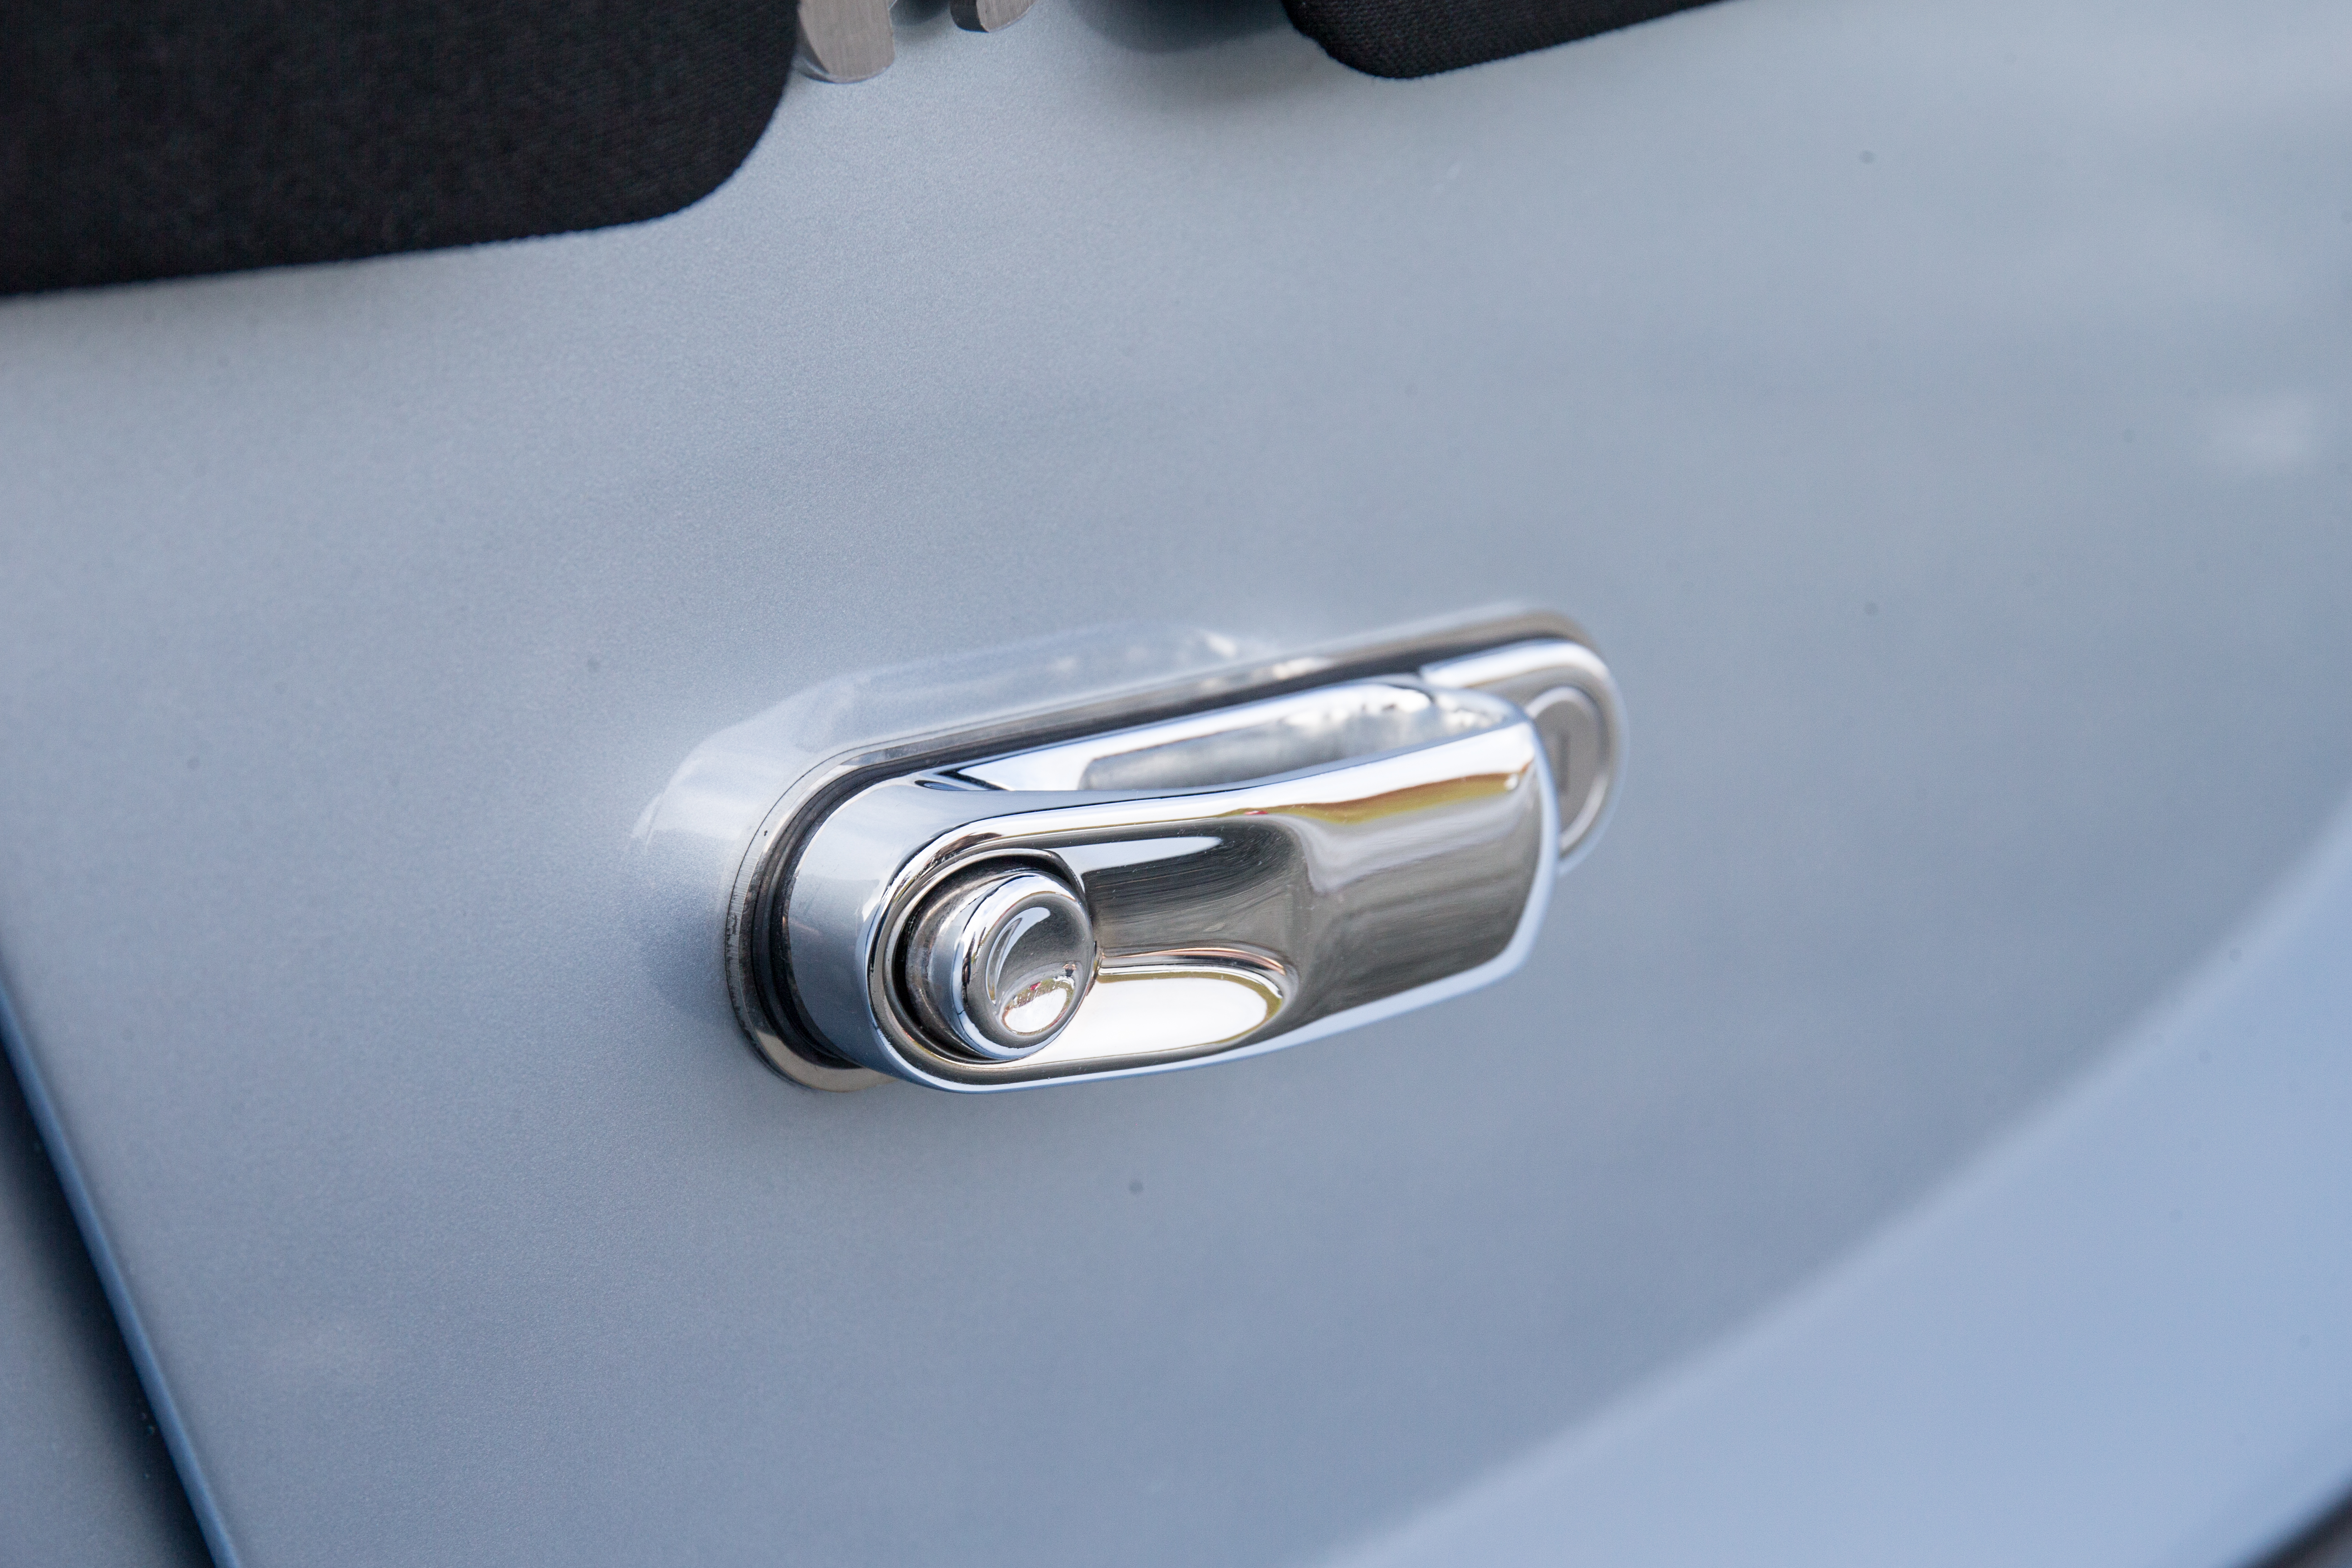 Push button door handles are a classic touch